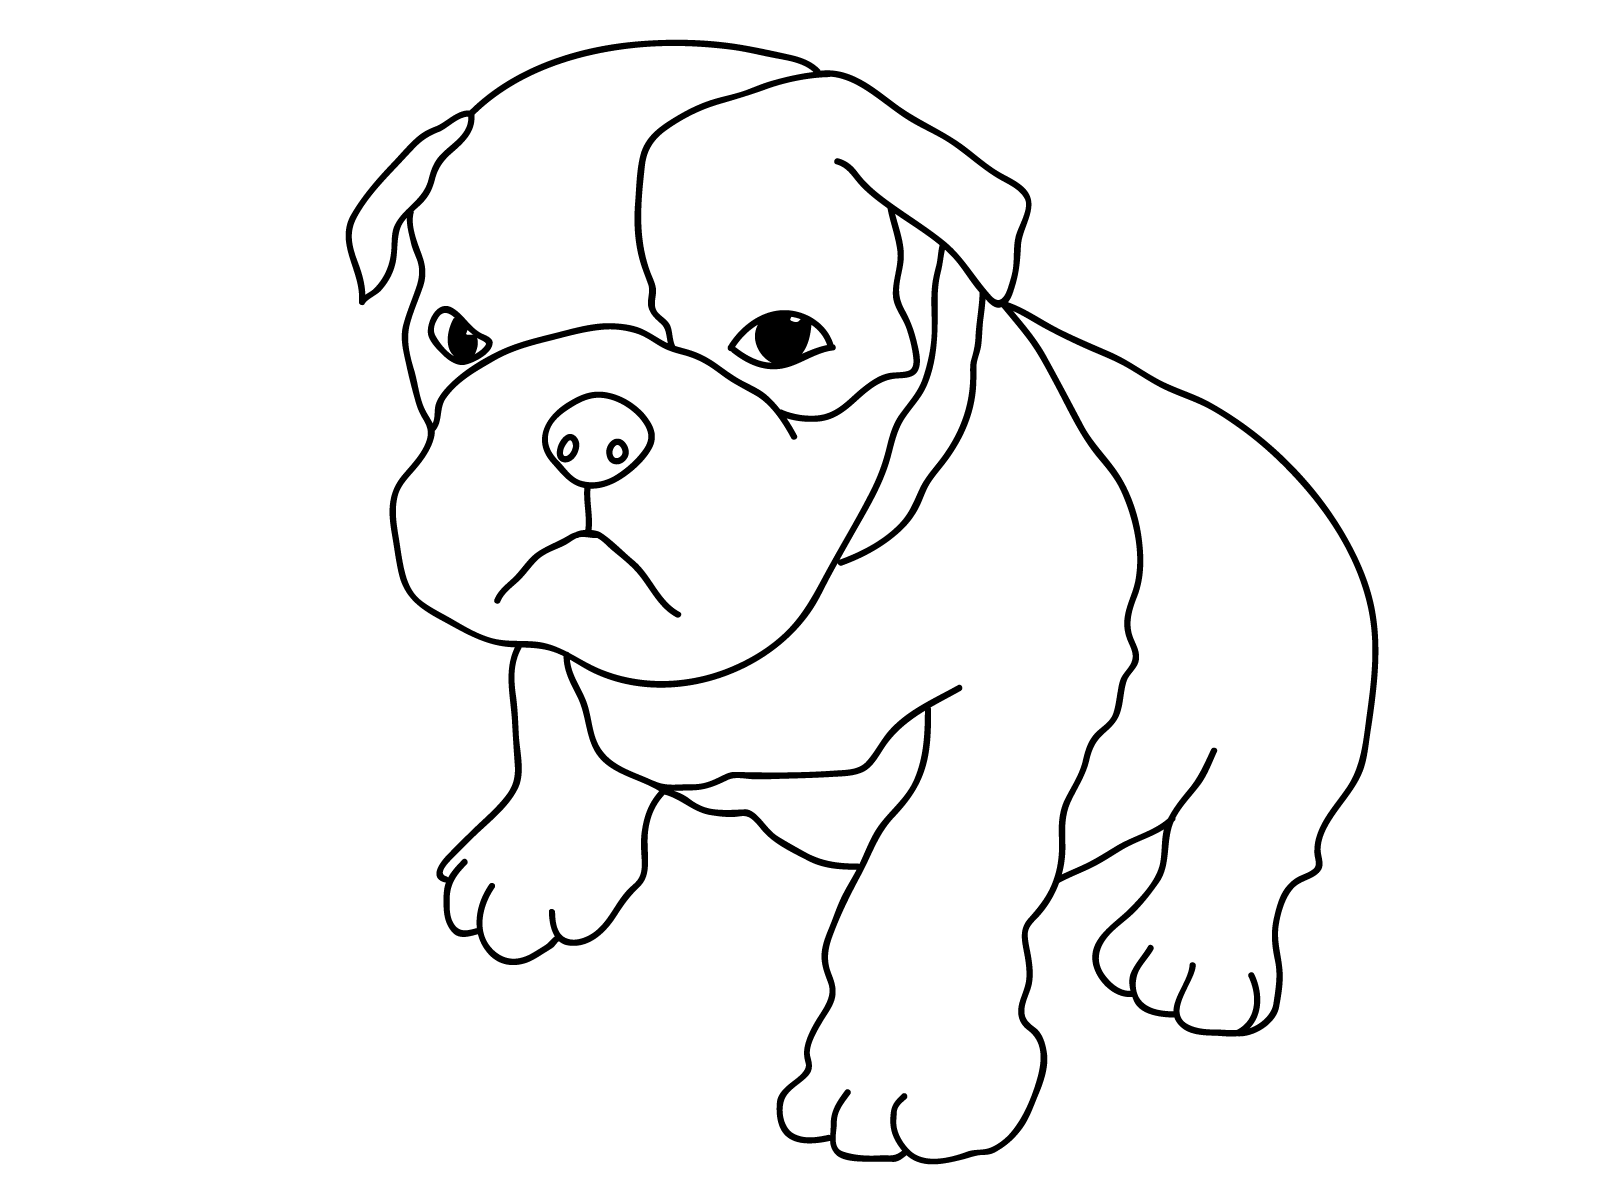 coloring book pages dogs - photo#29